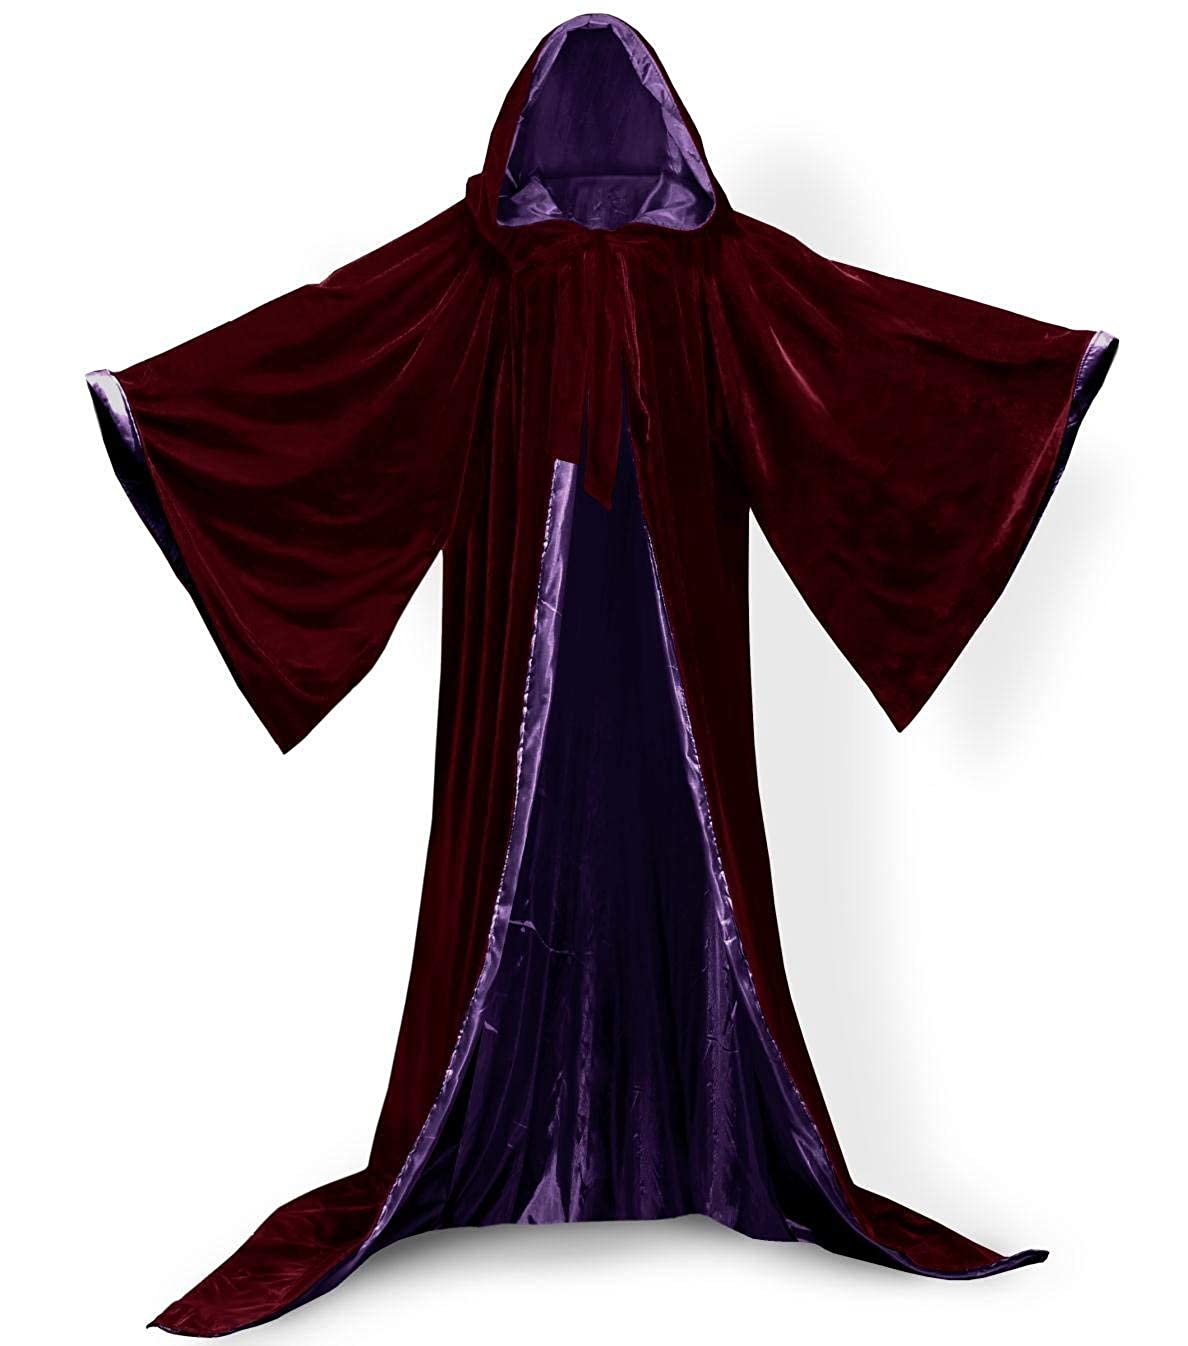 Burgundypurple M ShineGown Burgundy Medieval Wizard Robe with Hoods Halloween Cloak Long Sleeves Velvet Unisex Masquerade for Christmas Party Costume Ball Gothic Full Length Cape Cosplay Fancy Coat Many colors